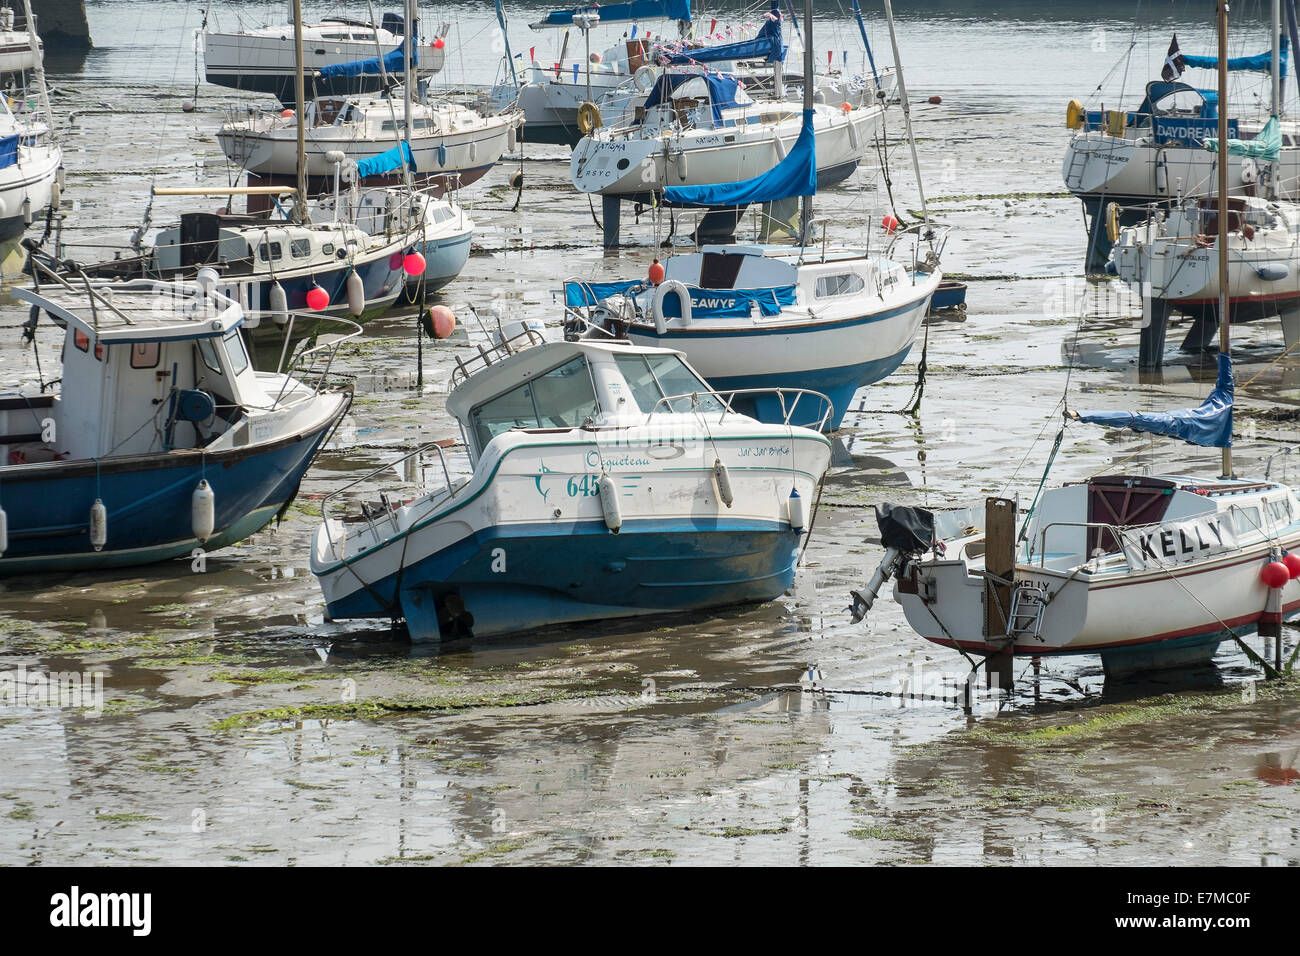 Harbour; Low tide; Boats; Sail boats; Moored; Moorings; Mud; Muddy; Nobody - Stock Image